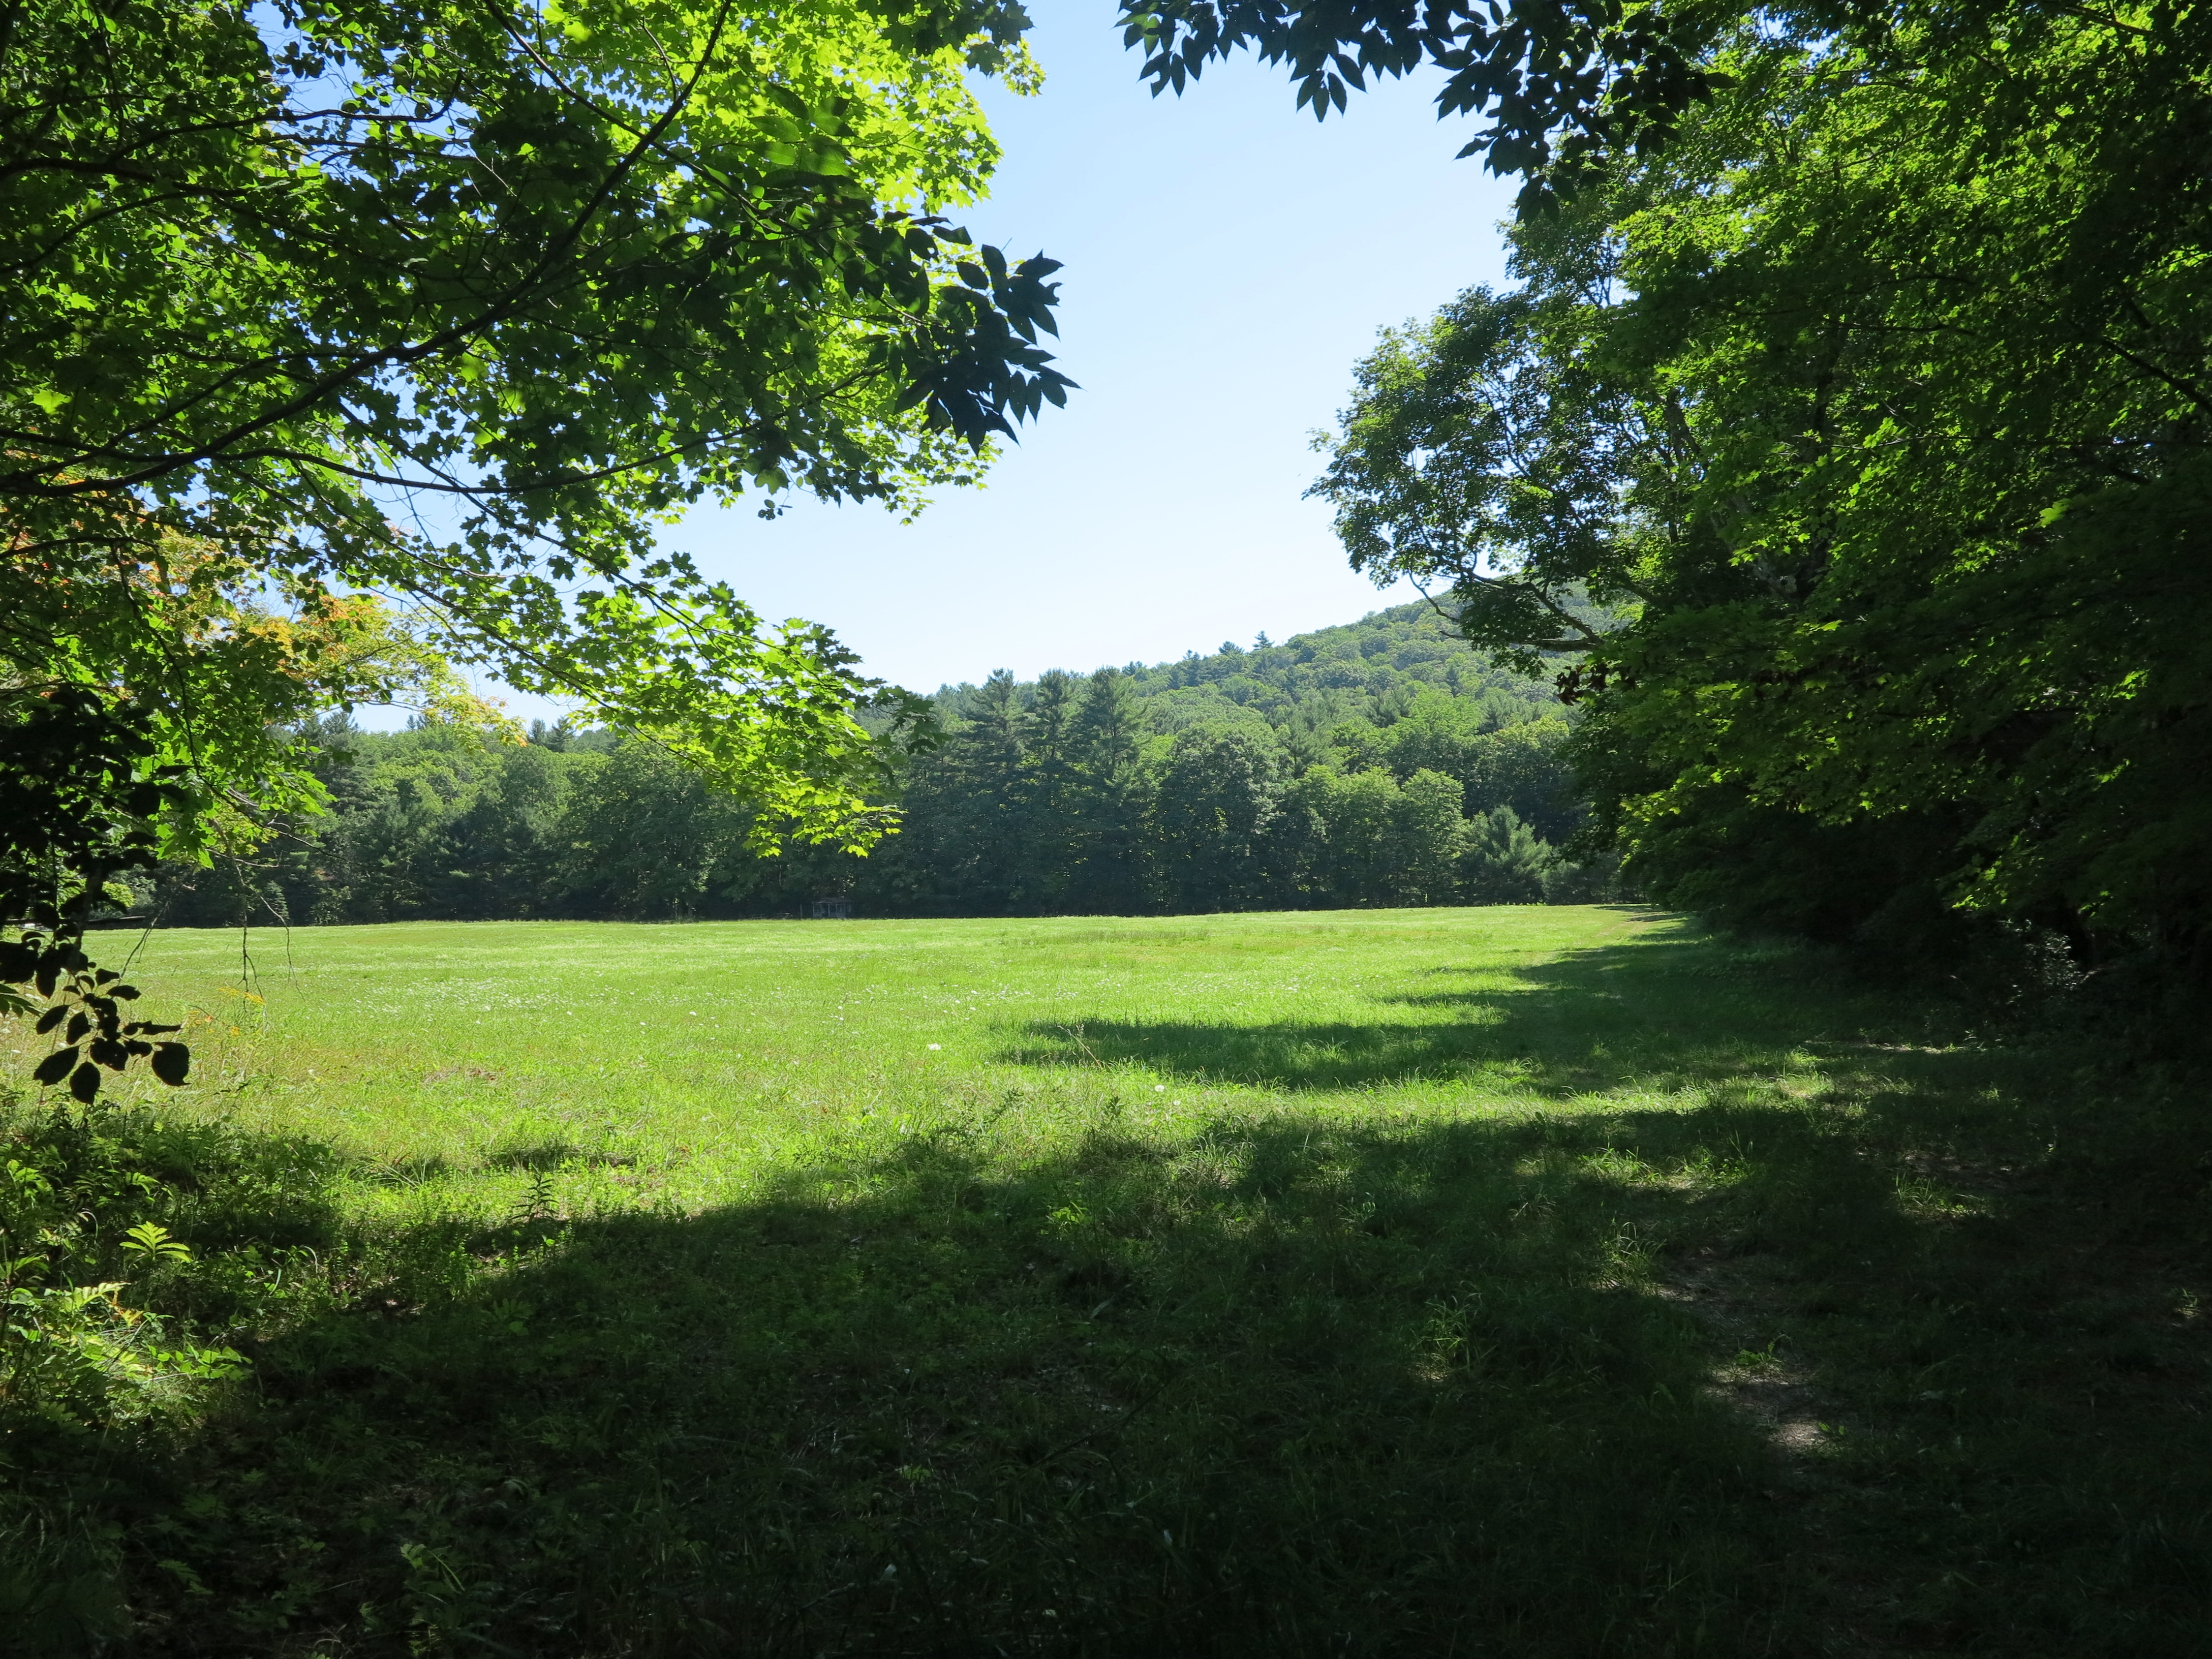 Terreno para Venda às Bucolic Estate Parcel on 21.75 Acres with River Frontage and Meadow 106 New Marlborough Southfield Rd New Marlborough, Massachusetts, 01230 Estados Unidos